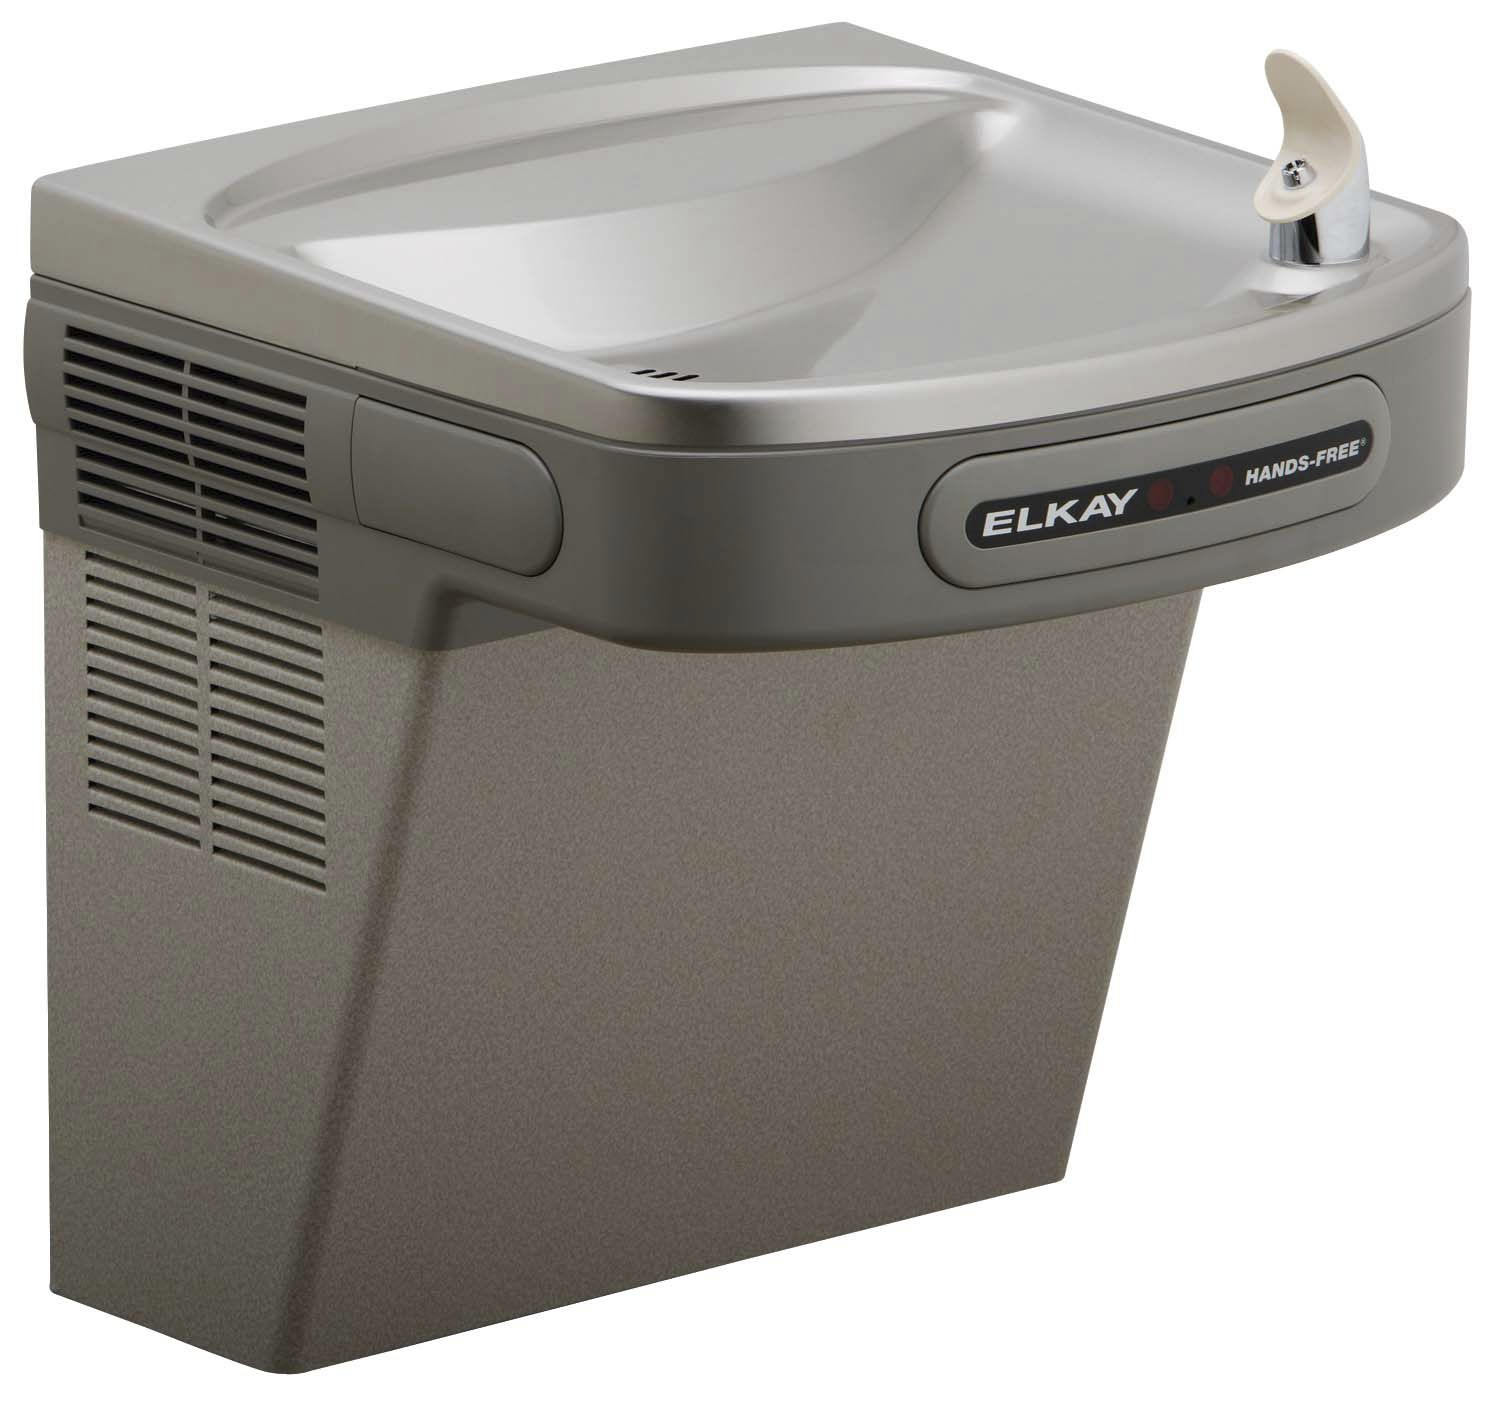 Indoor drinking fountain / steel - EZO8L - Elkay